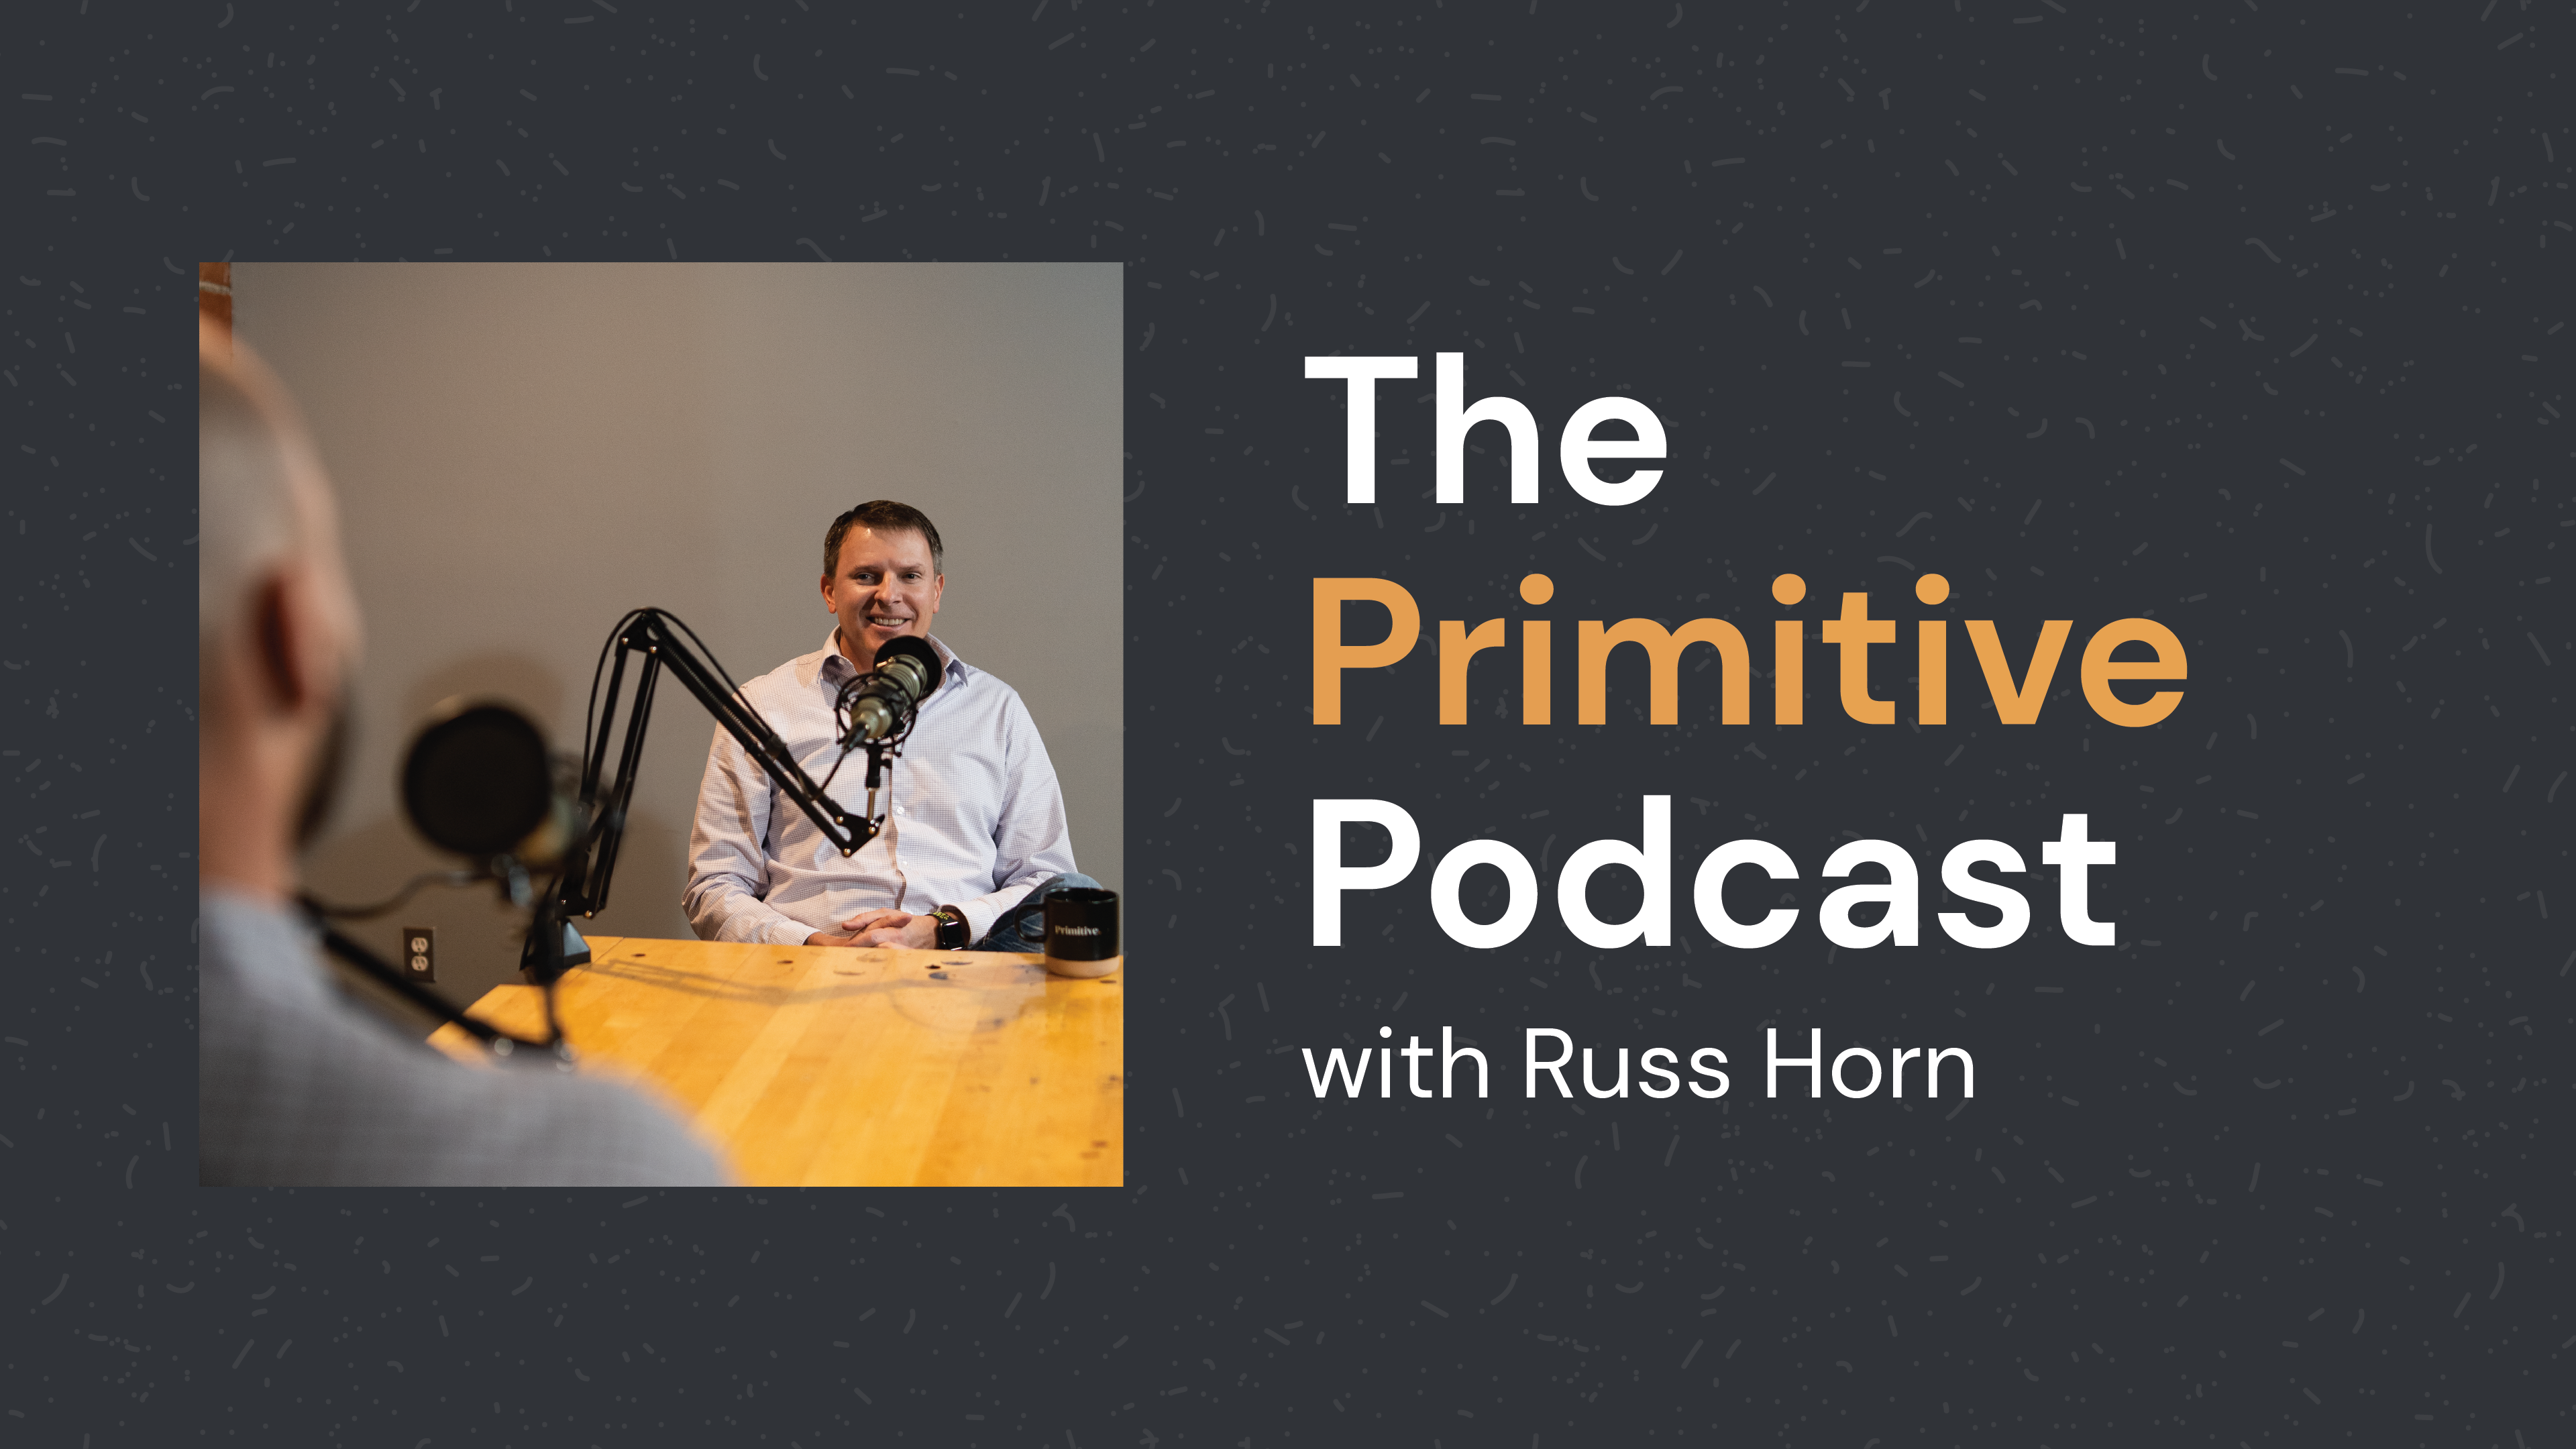 Primitive Podcast with Russ Horn